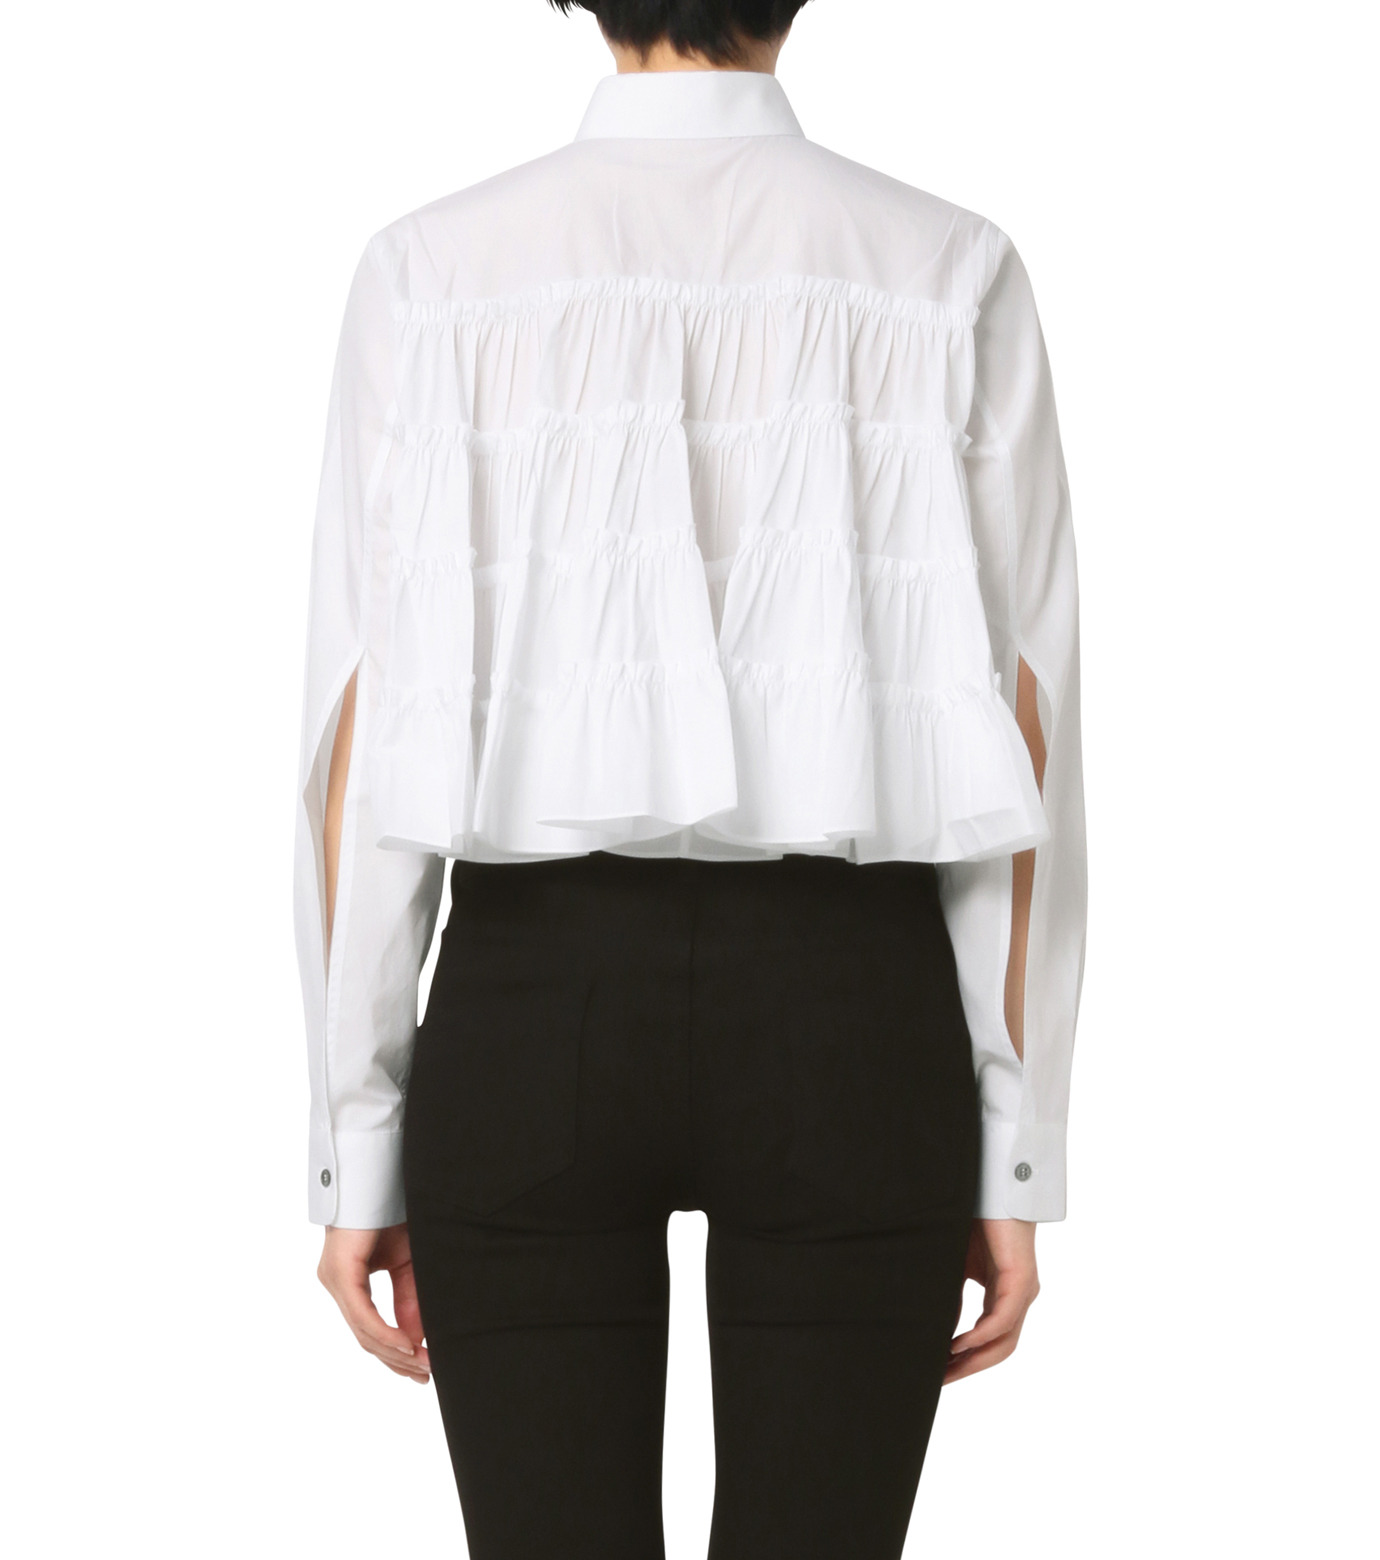 Jourden(ジョーダン)のWhite Cropped Shirt-WHITE(シャツ/shirt)-1603WC3TH01-4 拡大詳細画像2